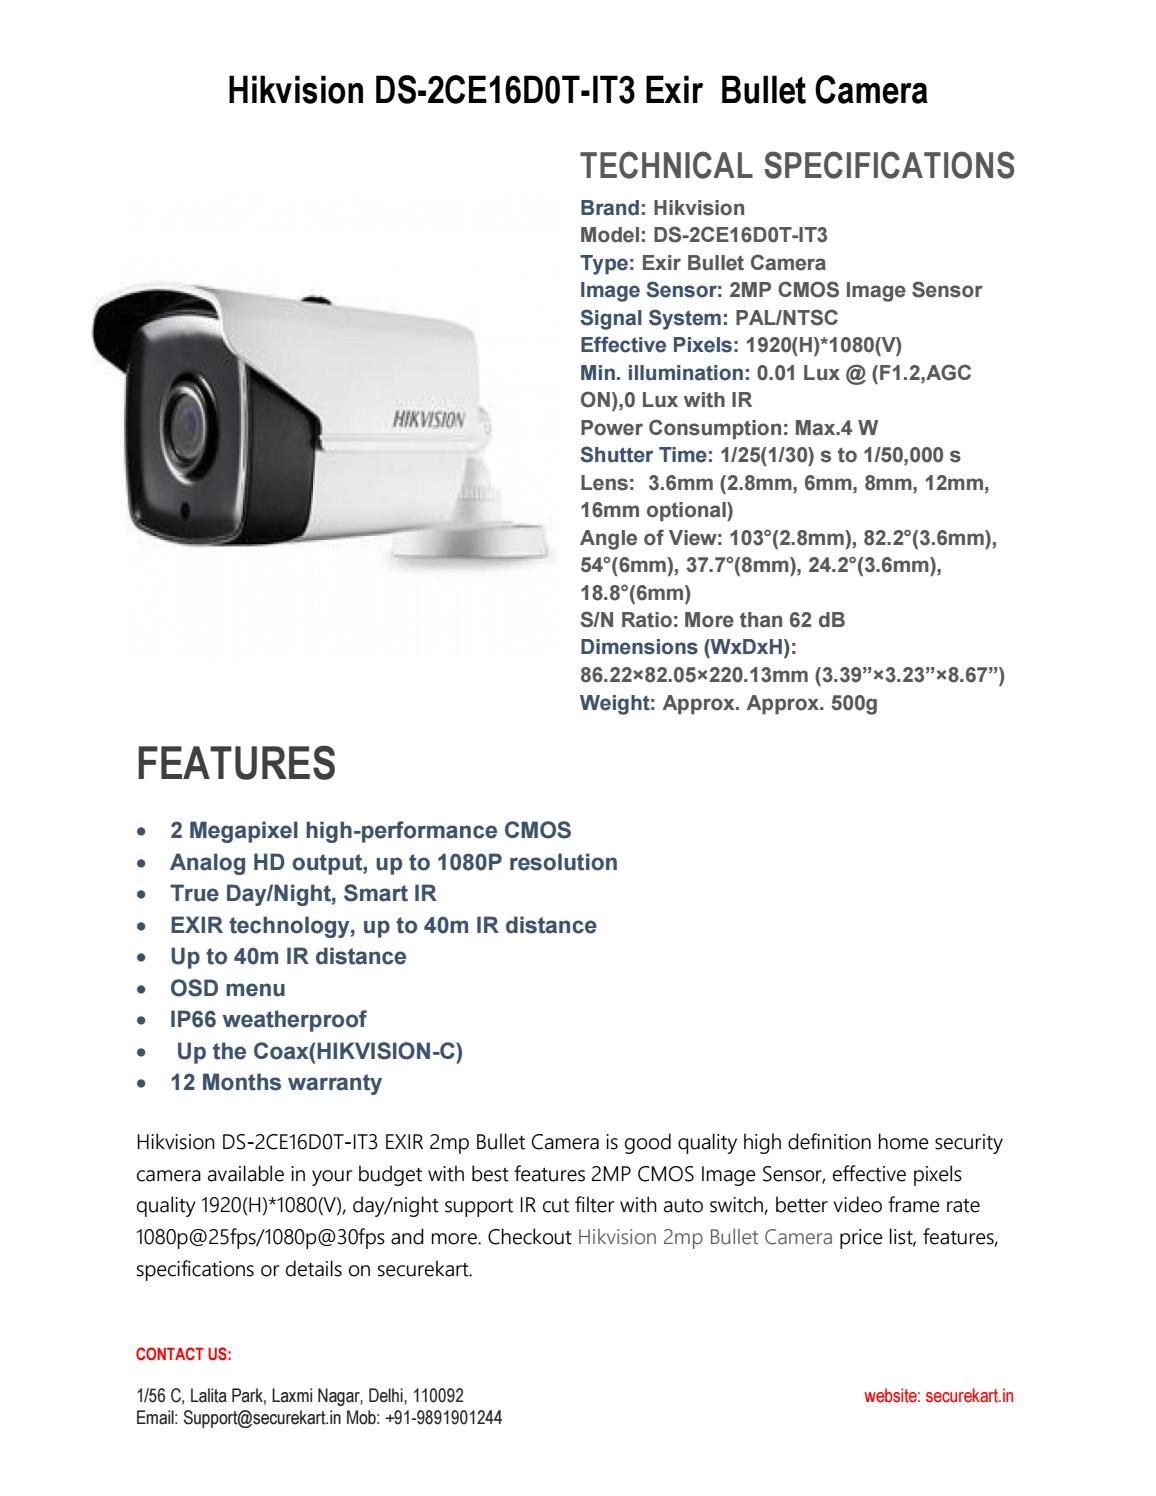 Hikvision ds 2ce16d0t it3 Exir 2mp Bullet Camera by securekart - issuu